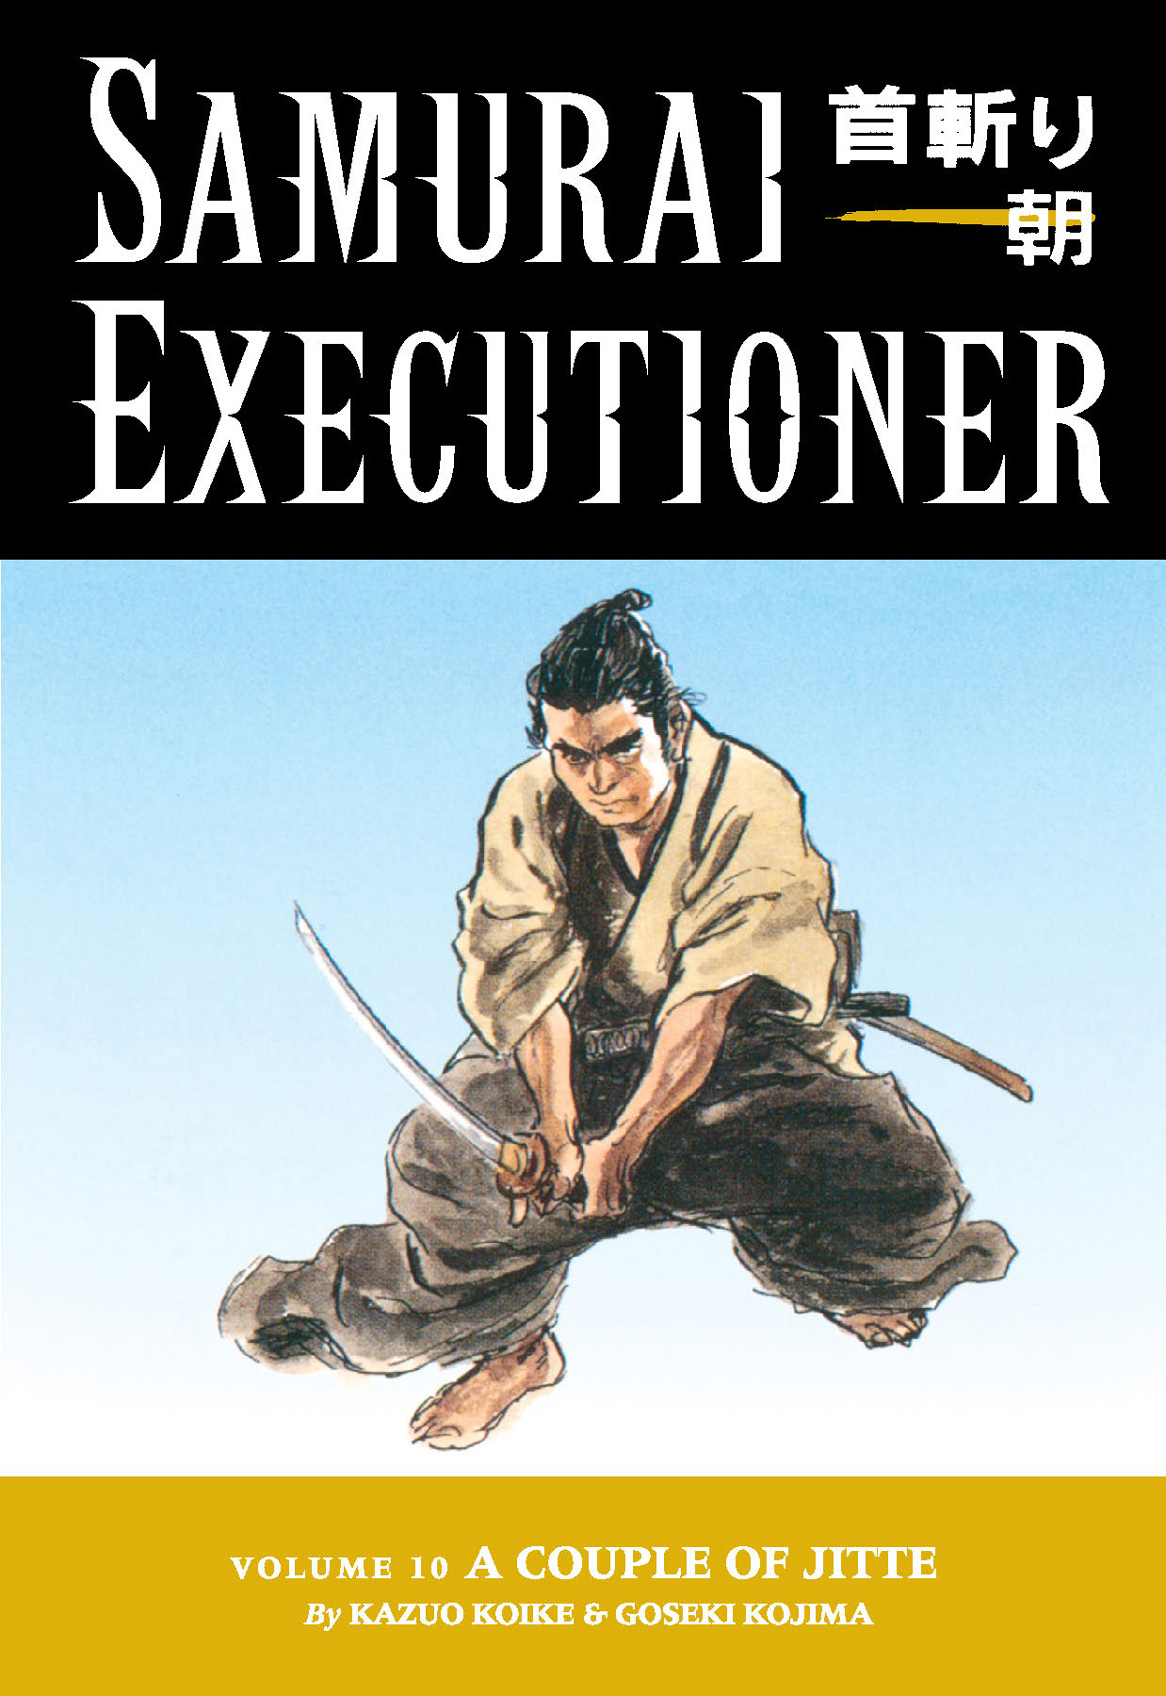 Samurai Executioner Vol. 10